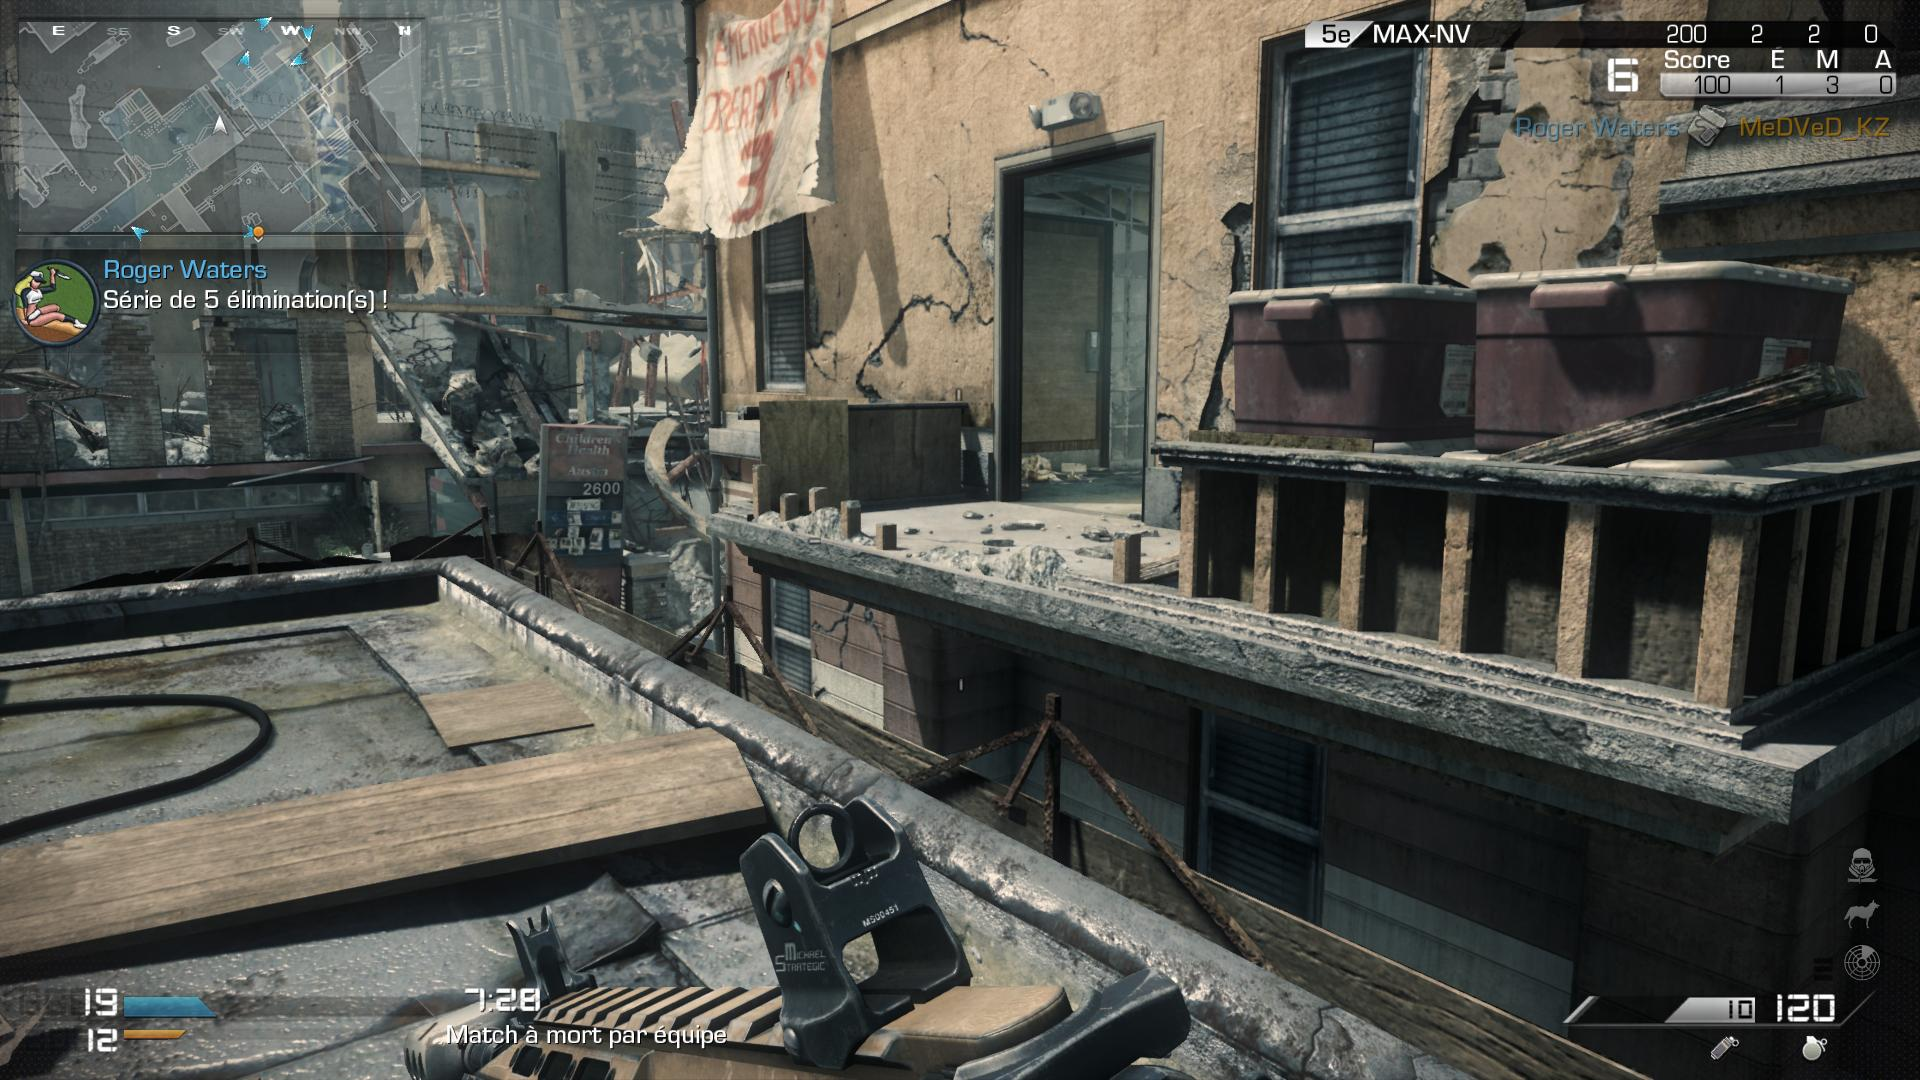 call of duty ghosts jeu vid 233 o pc sur pathfinding fr